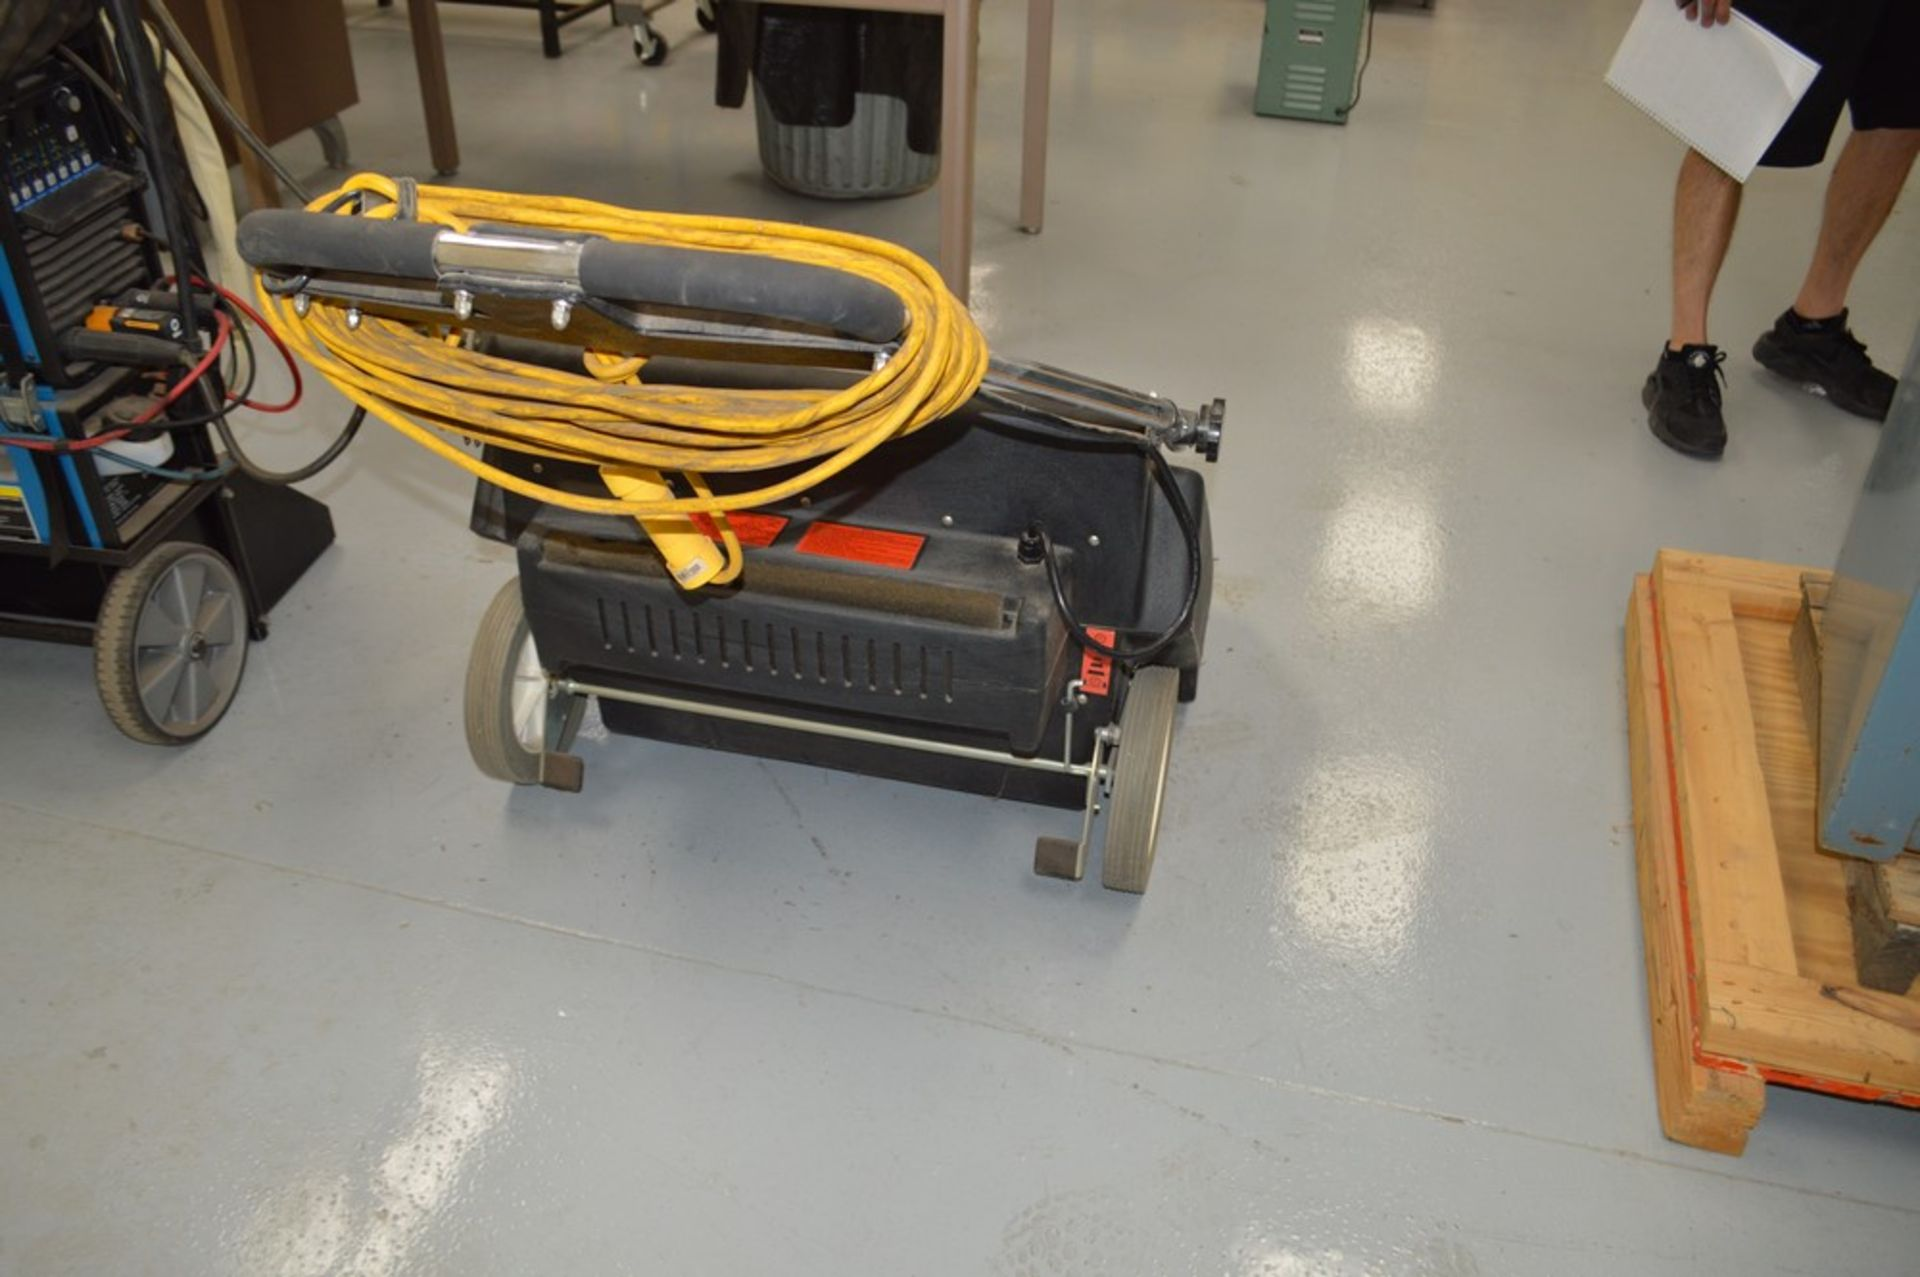 NSS, Super Suction Floor Vacuum Cleaner Model Pacer 30 - Image 5 of 5